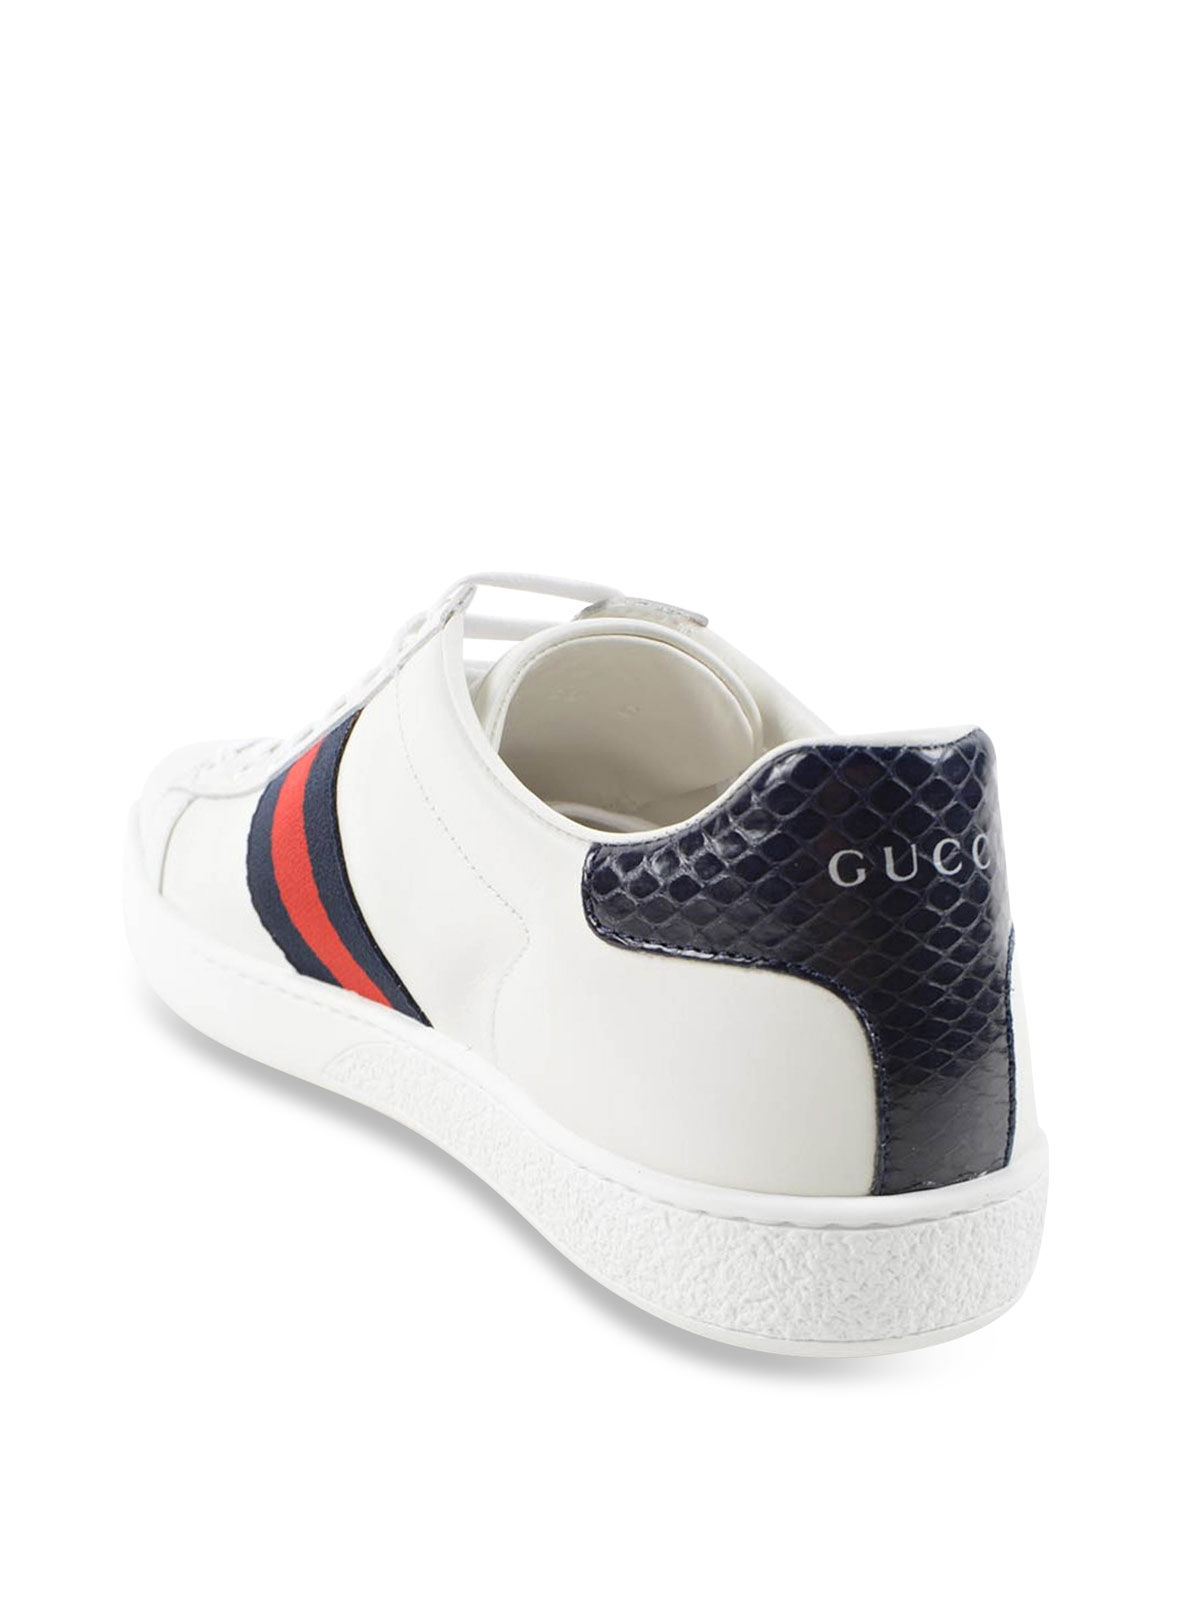 Gucci Ace Leather Sneakers Trainers 387993 A38d0